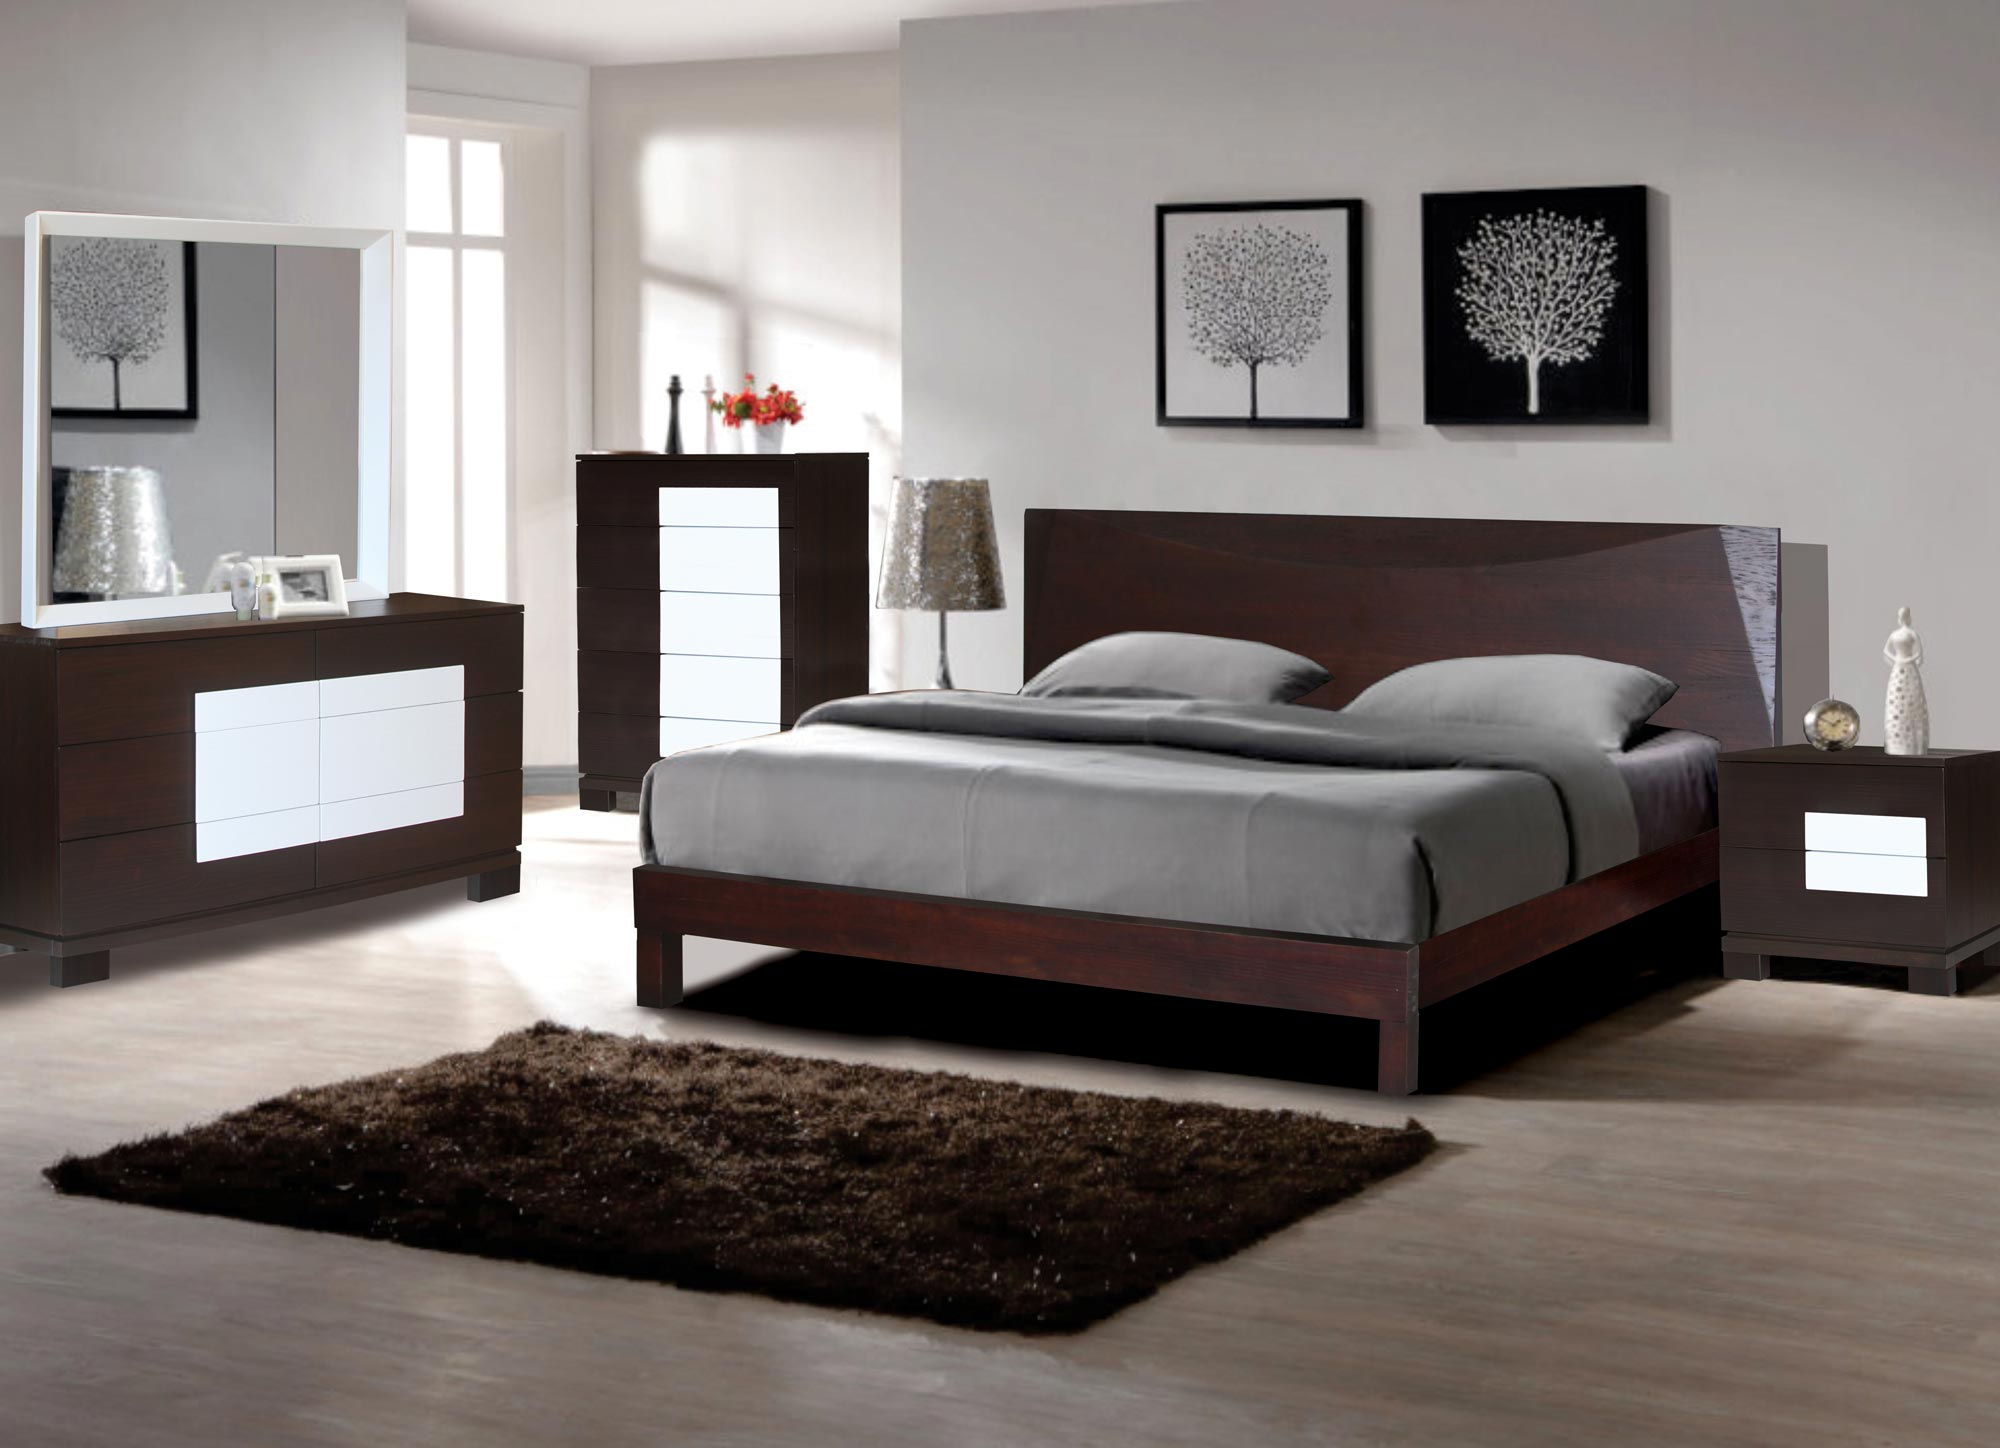 Marvelous photograph of Bedroom Furniture Trinidad on The Building Source with #271E1B color and 2000x1448 pixels